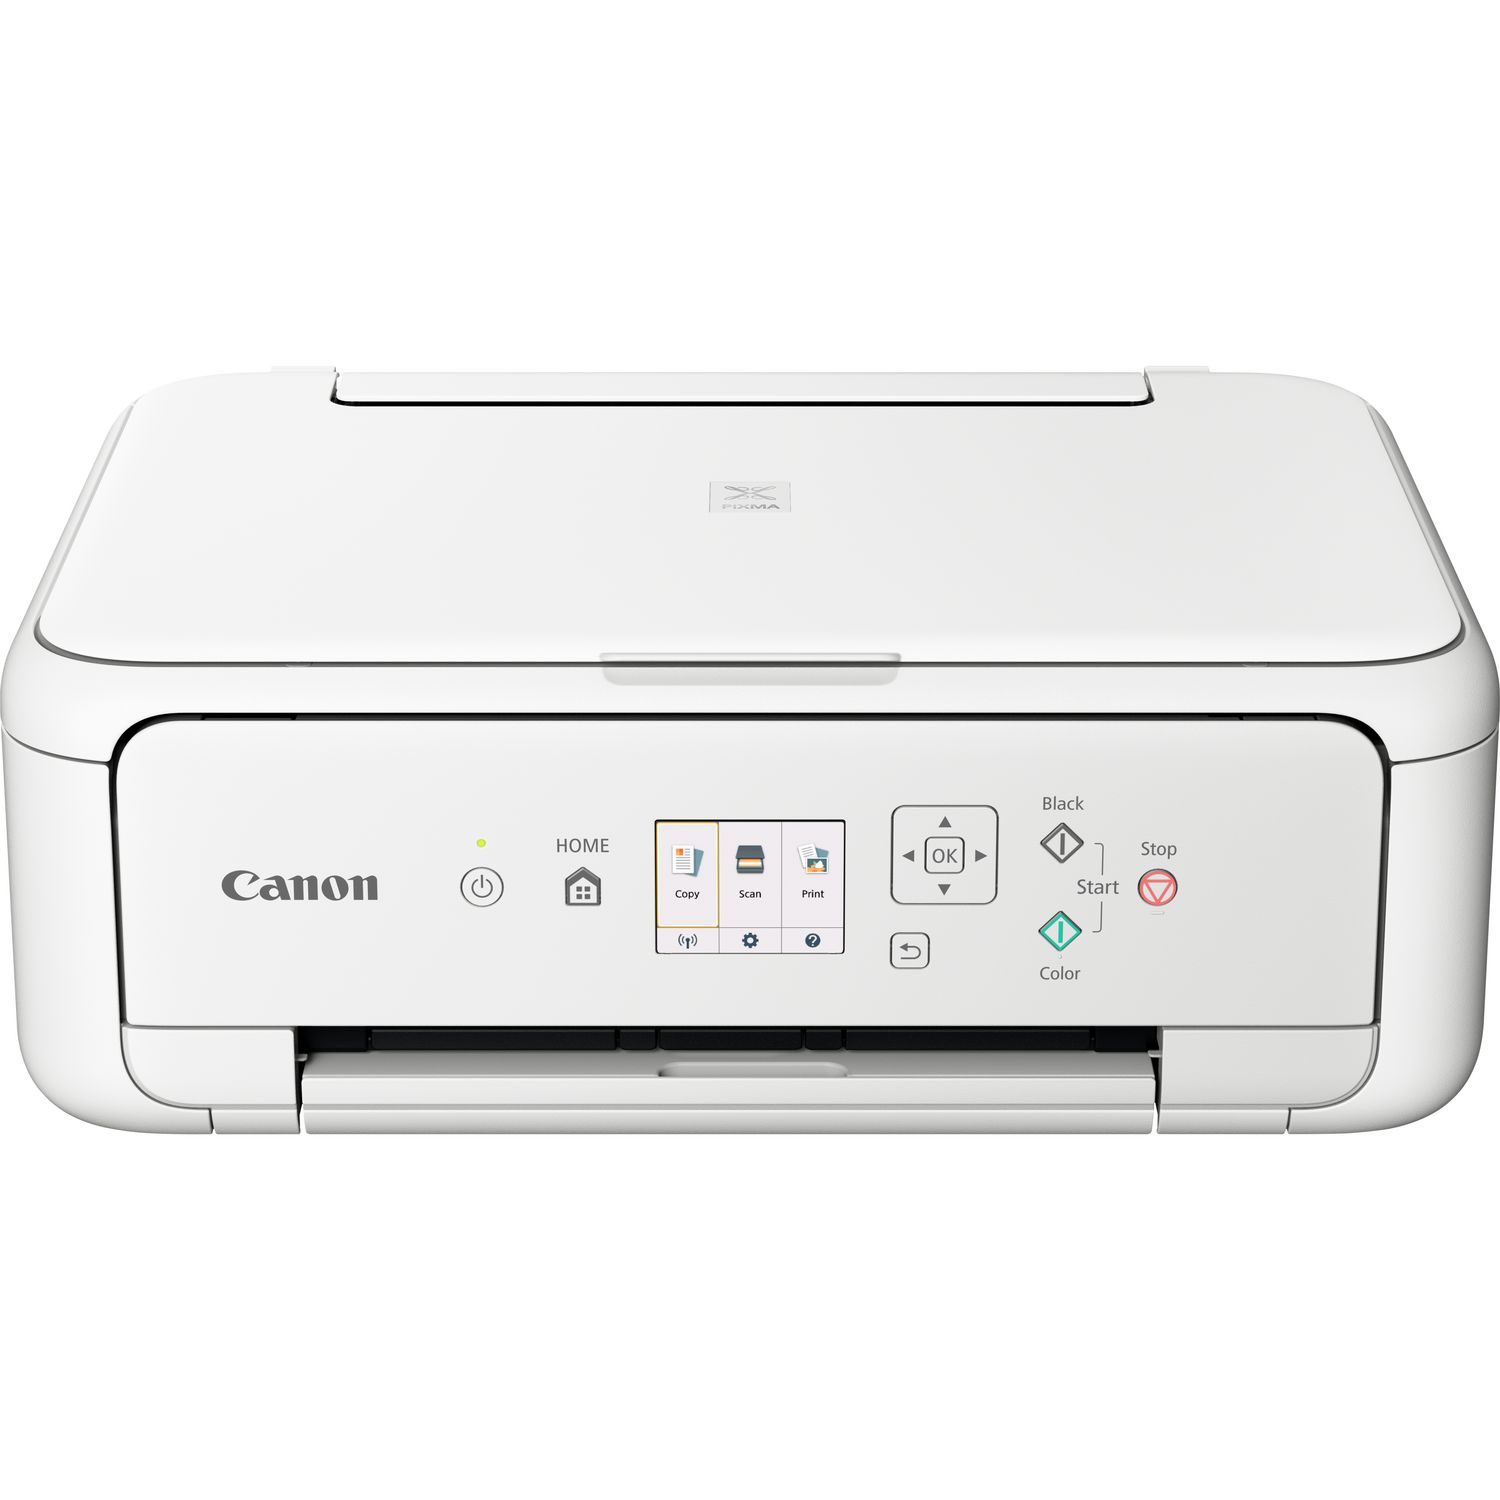 canon pixma ts5151 wei in wlan drucker canon deutschland shop. Black Bedroom Furniture Sets. Home Design Ideas